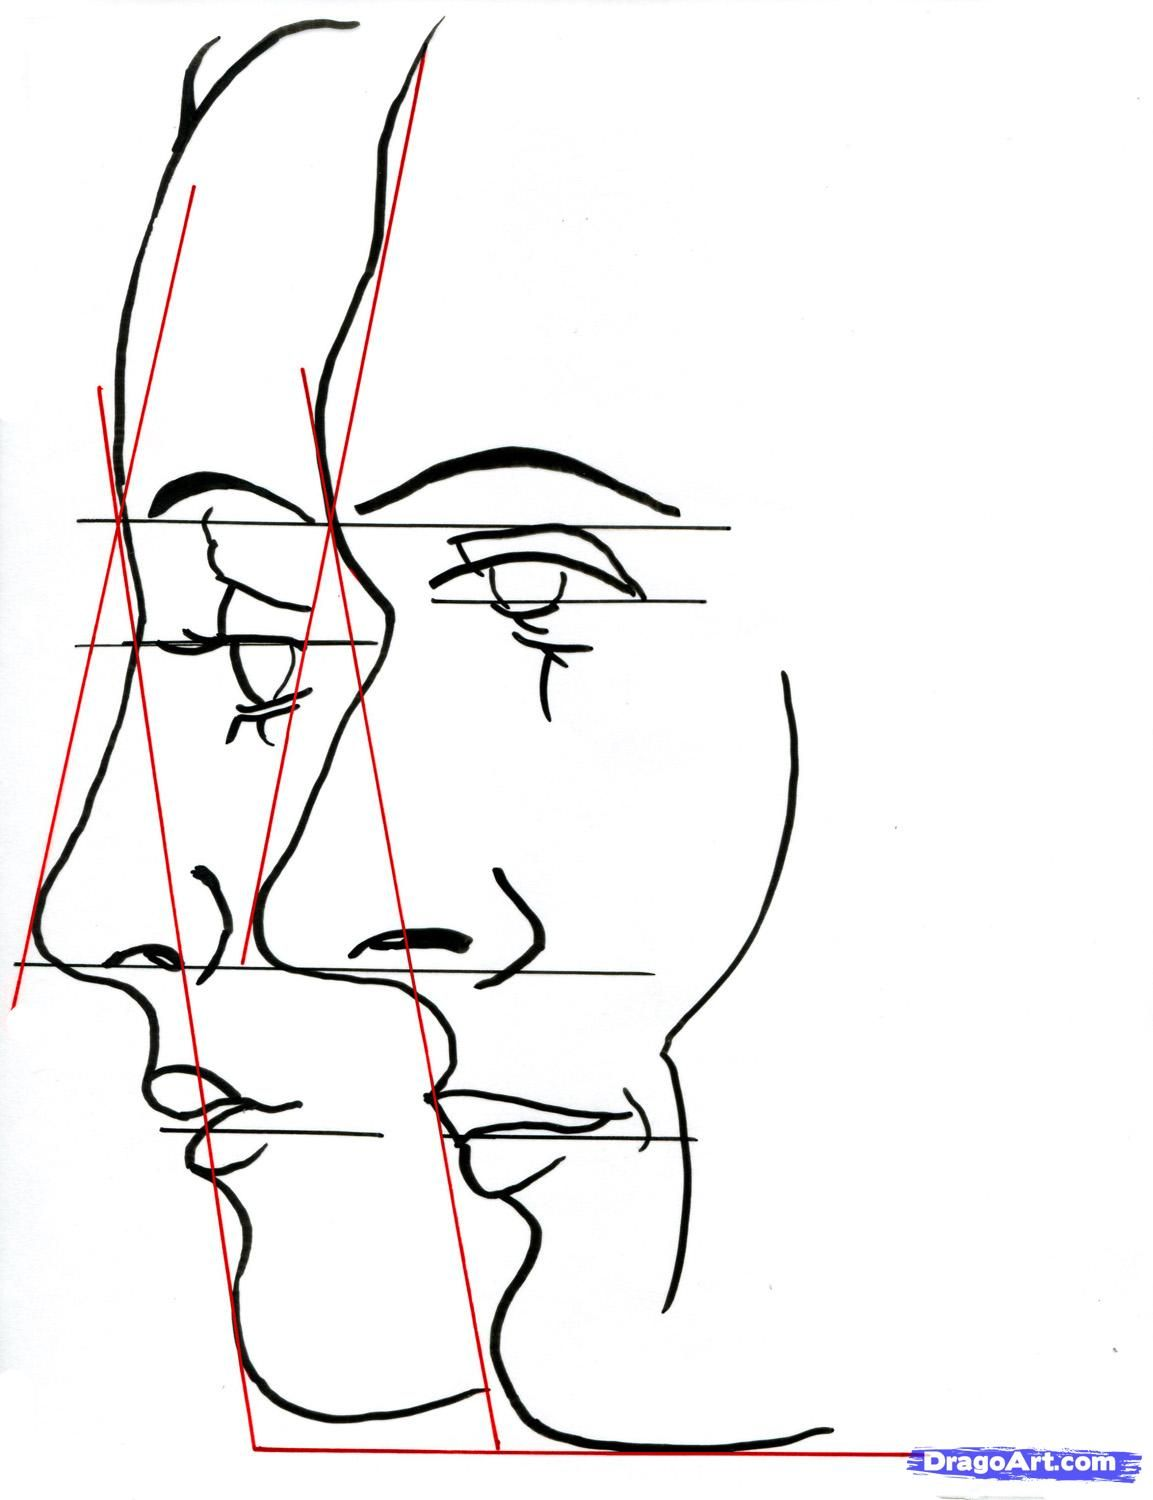 1153x1500 How To Draw A Face Profile Faces To Draw Draw, Drawing